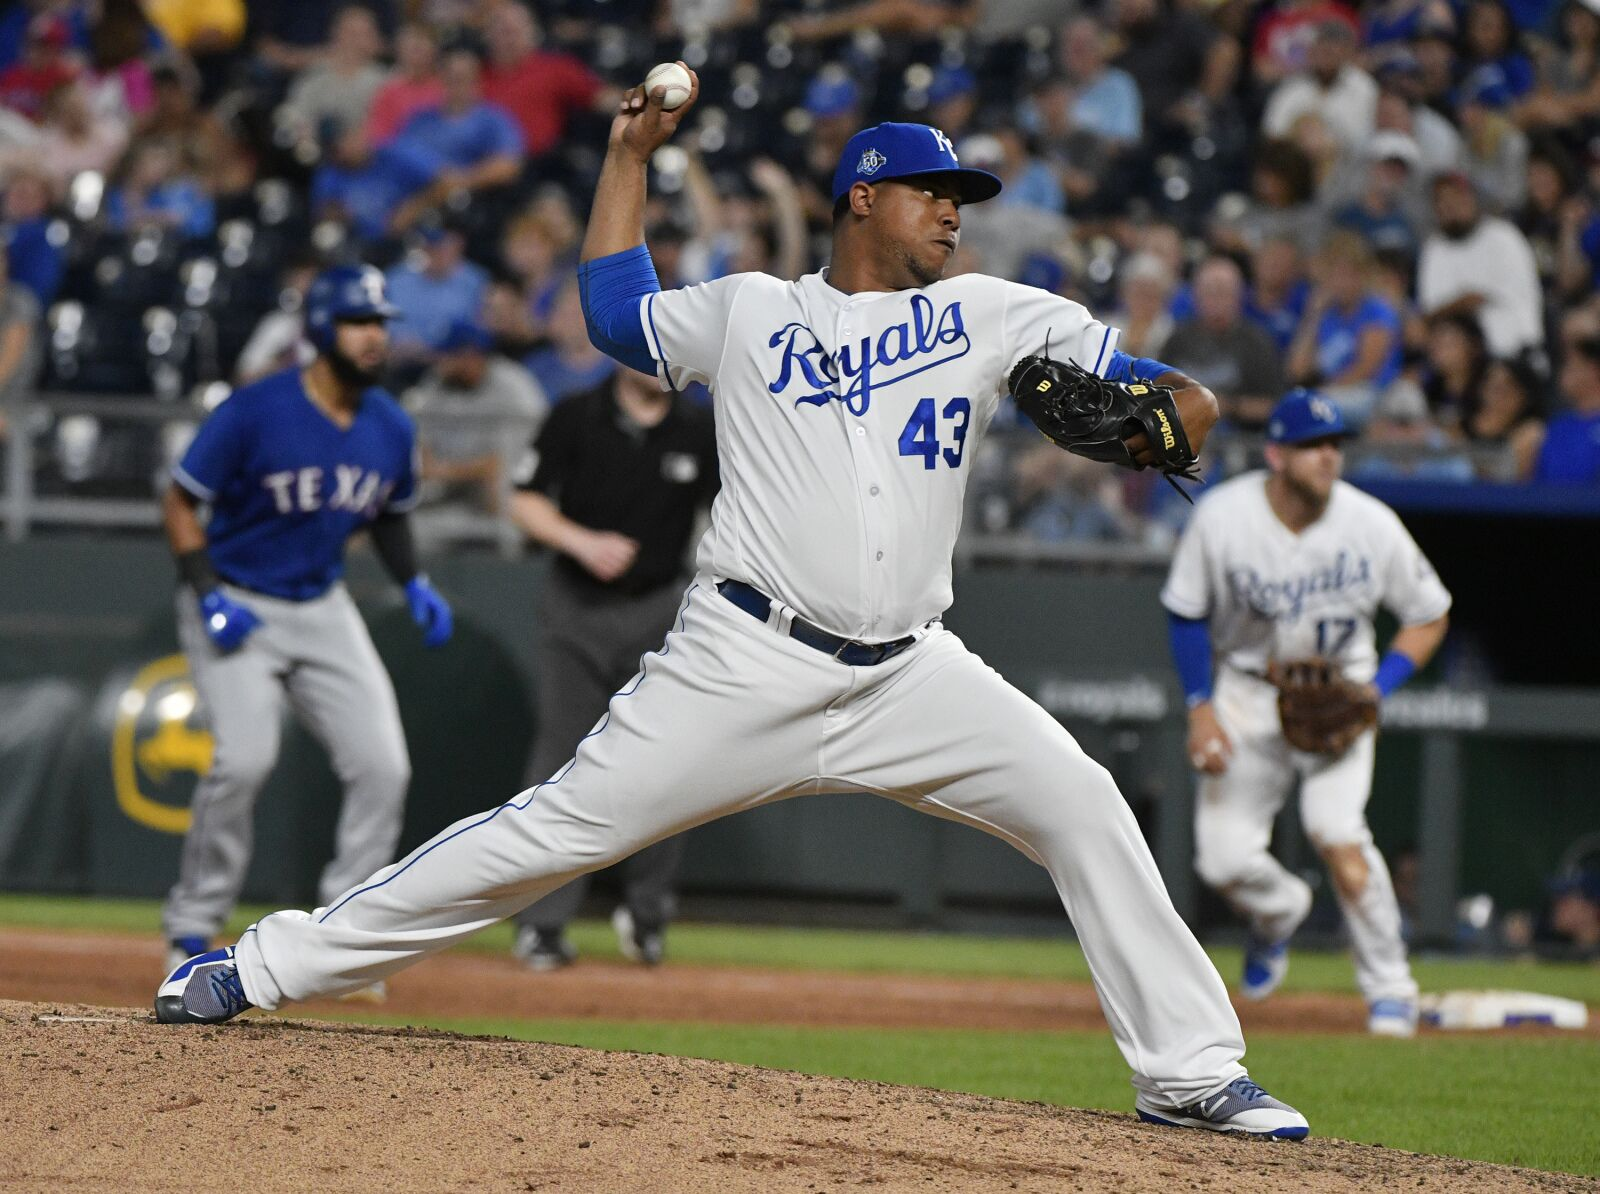 Image result for wily peralta royals